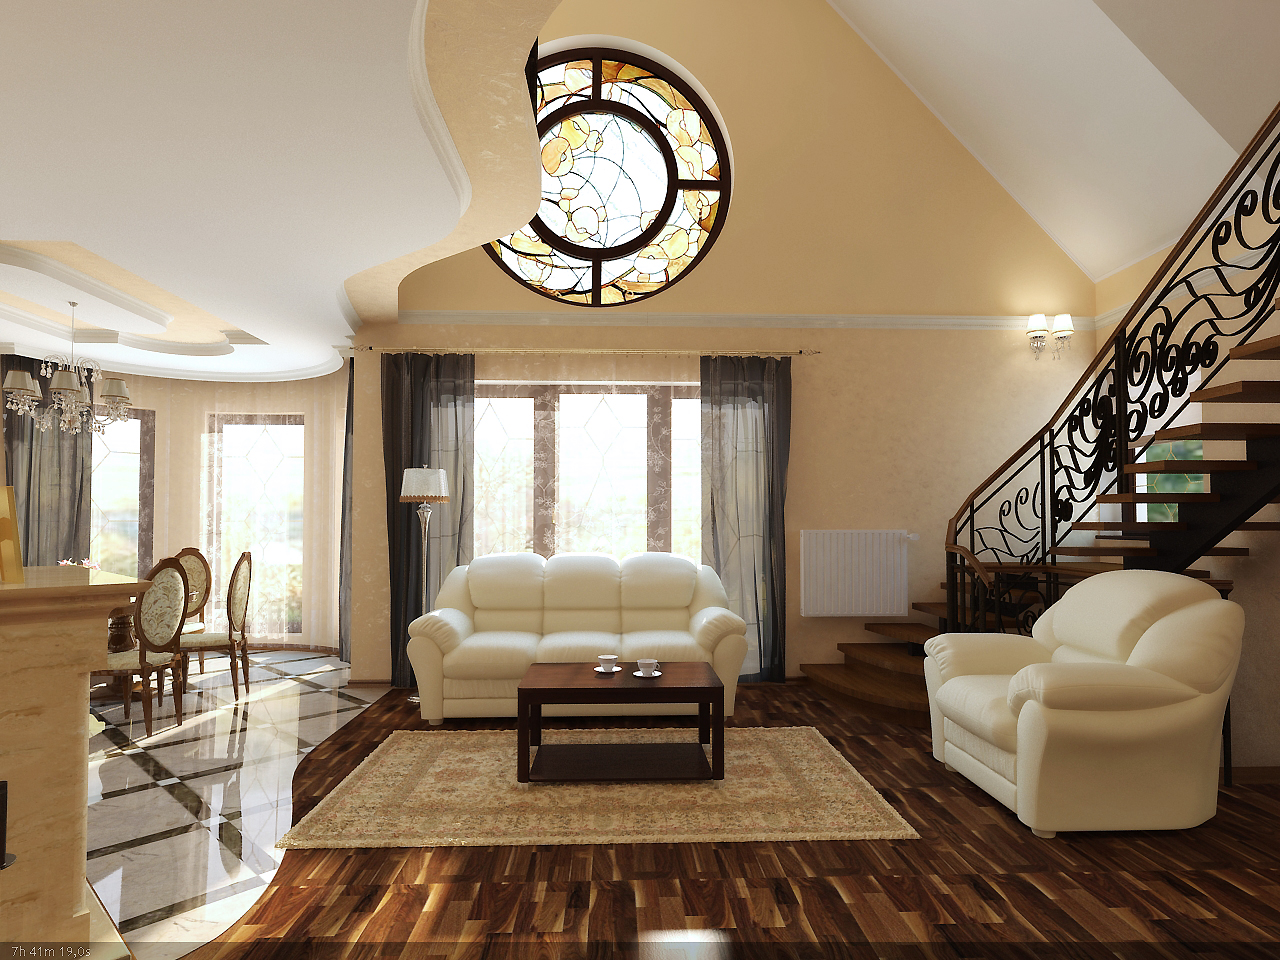 House Interior Design classic interior design